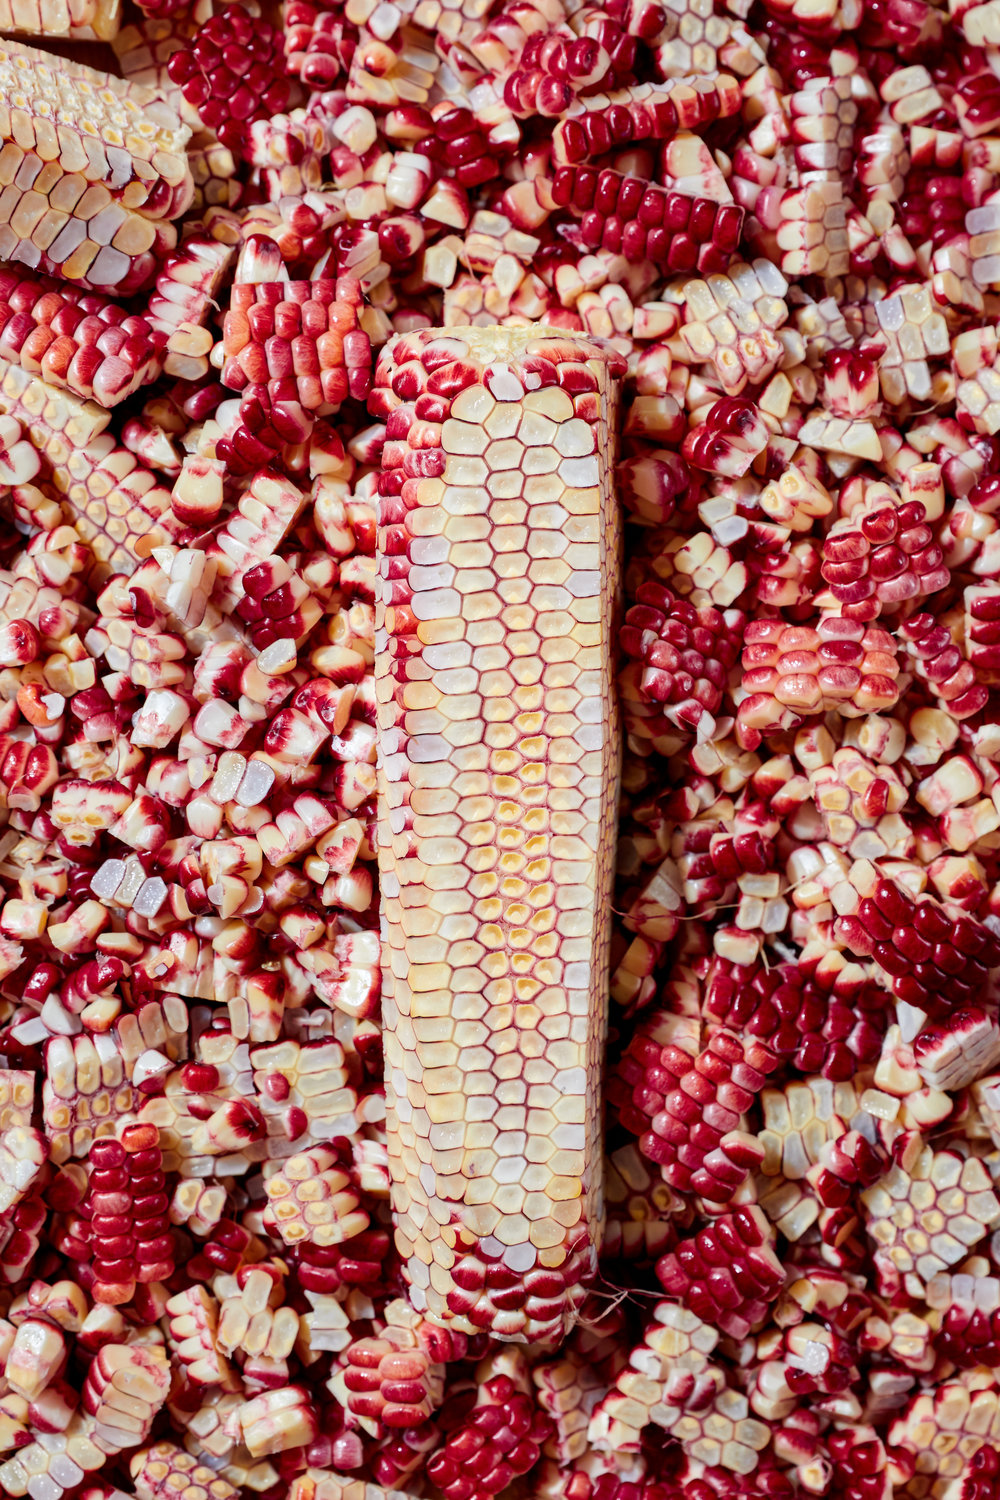 NS_Ruby_Red_Corn 6.jpg